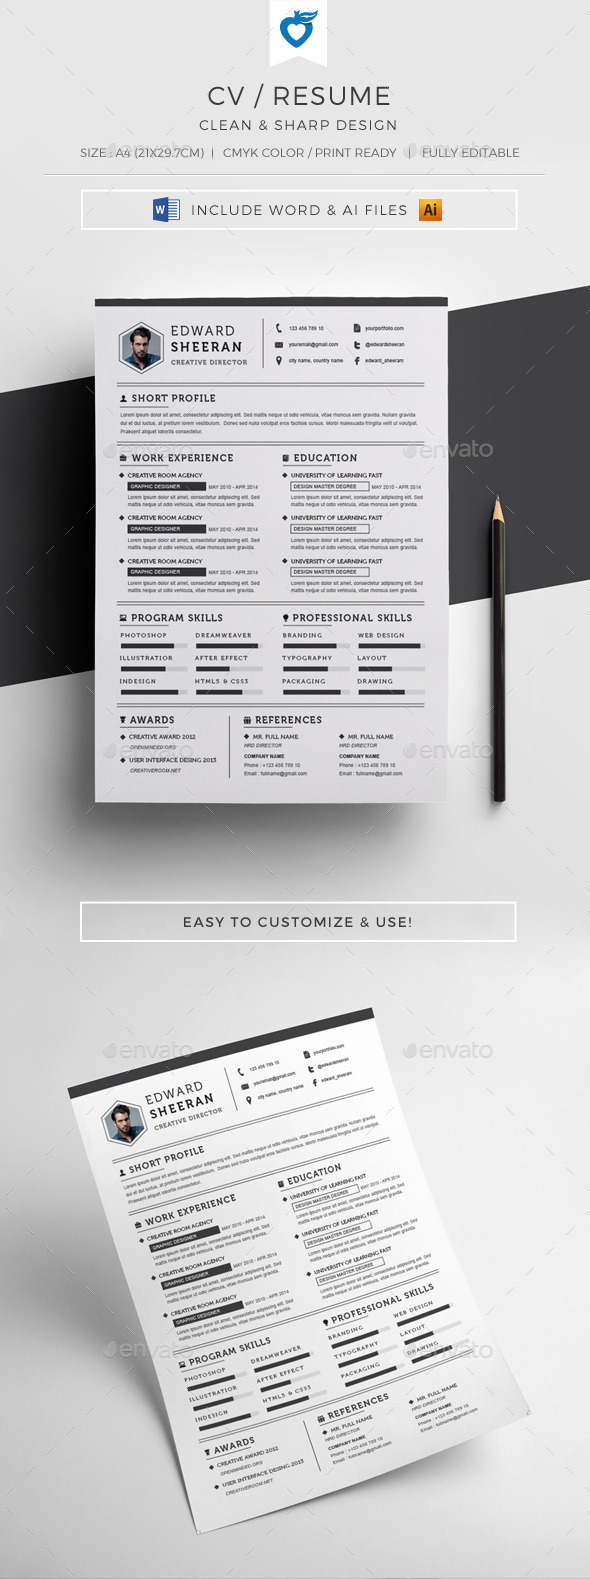 GraphicRiver CV RESUME 10990917